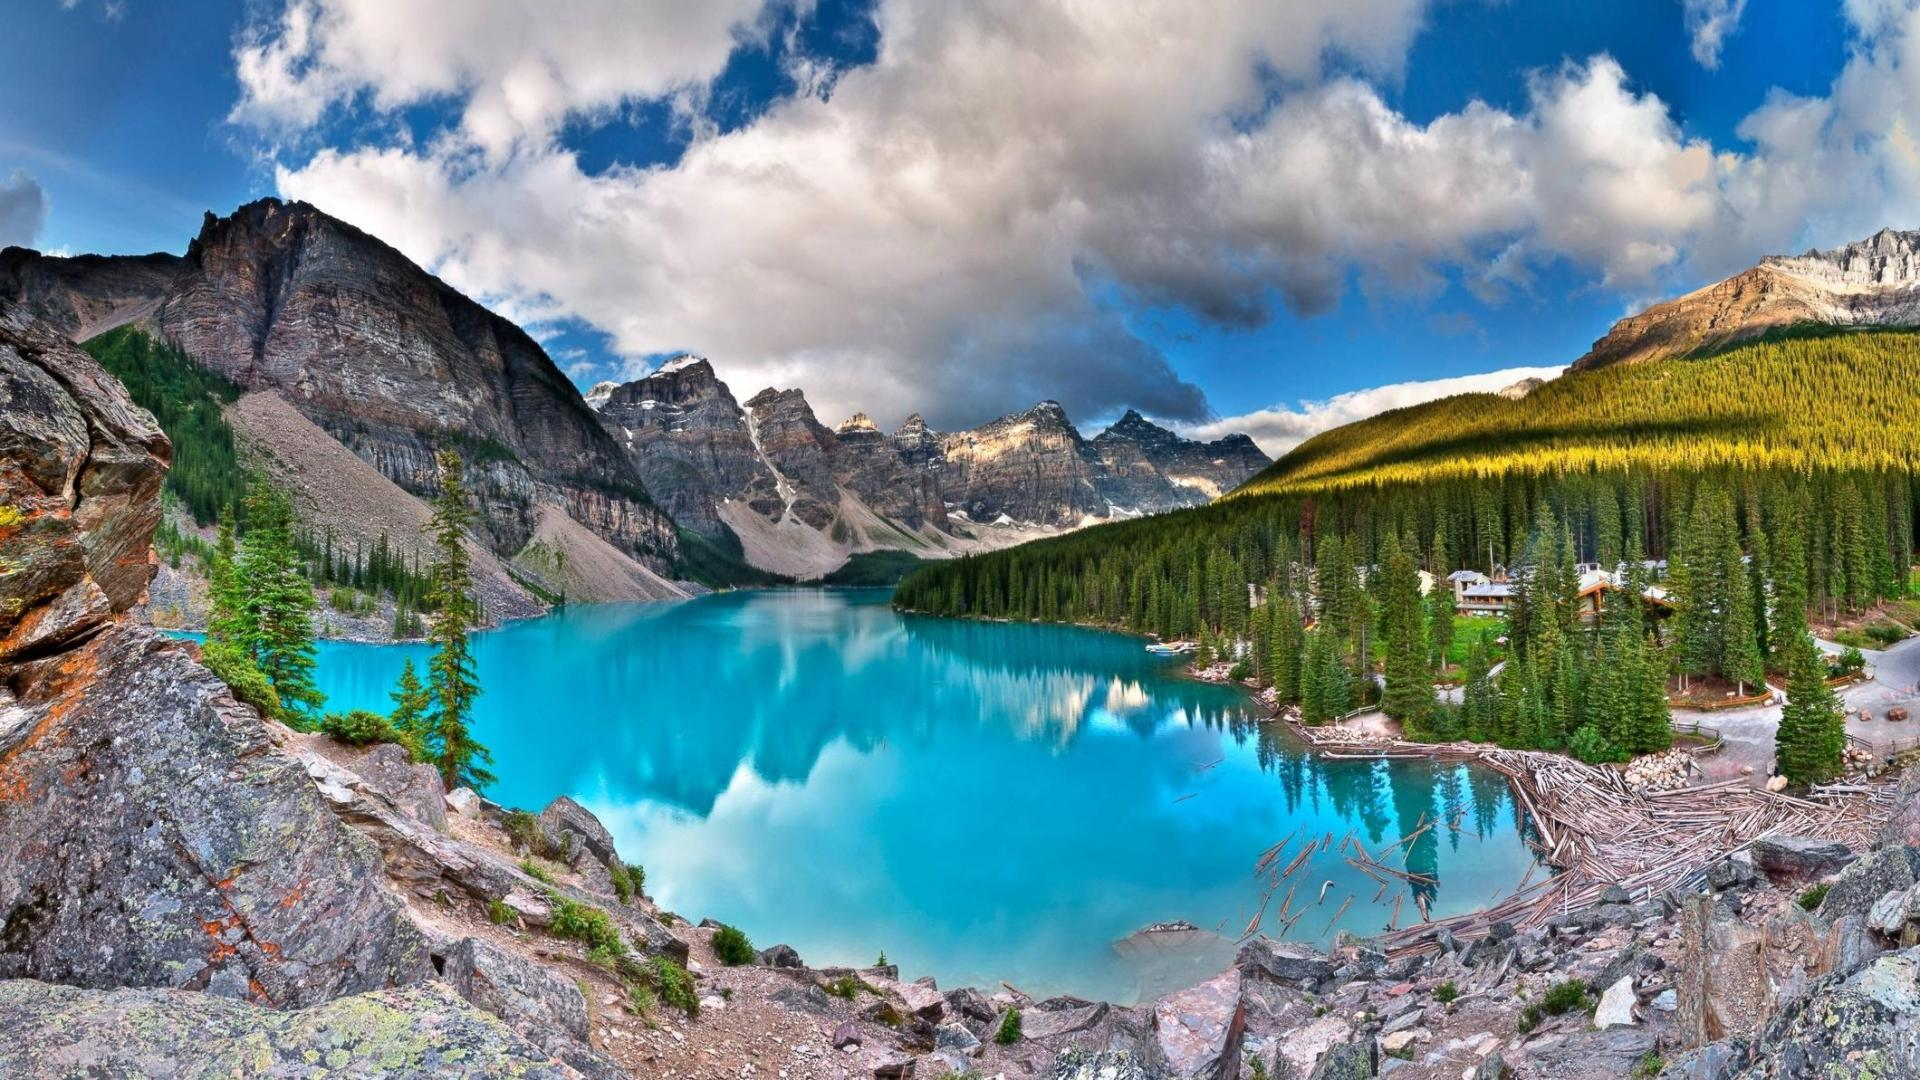 Banff national park canada emerald moraine lake wallpapers